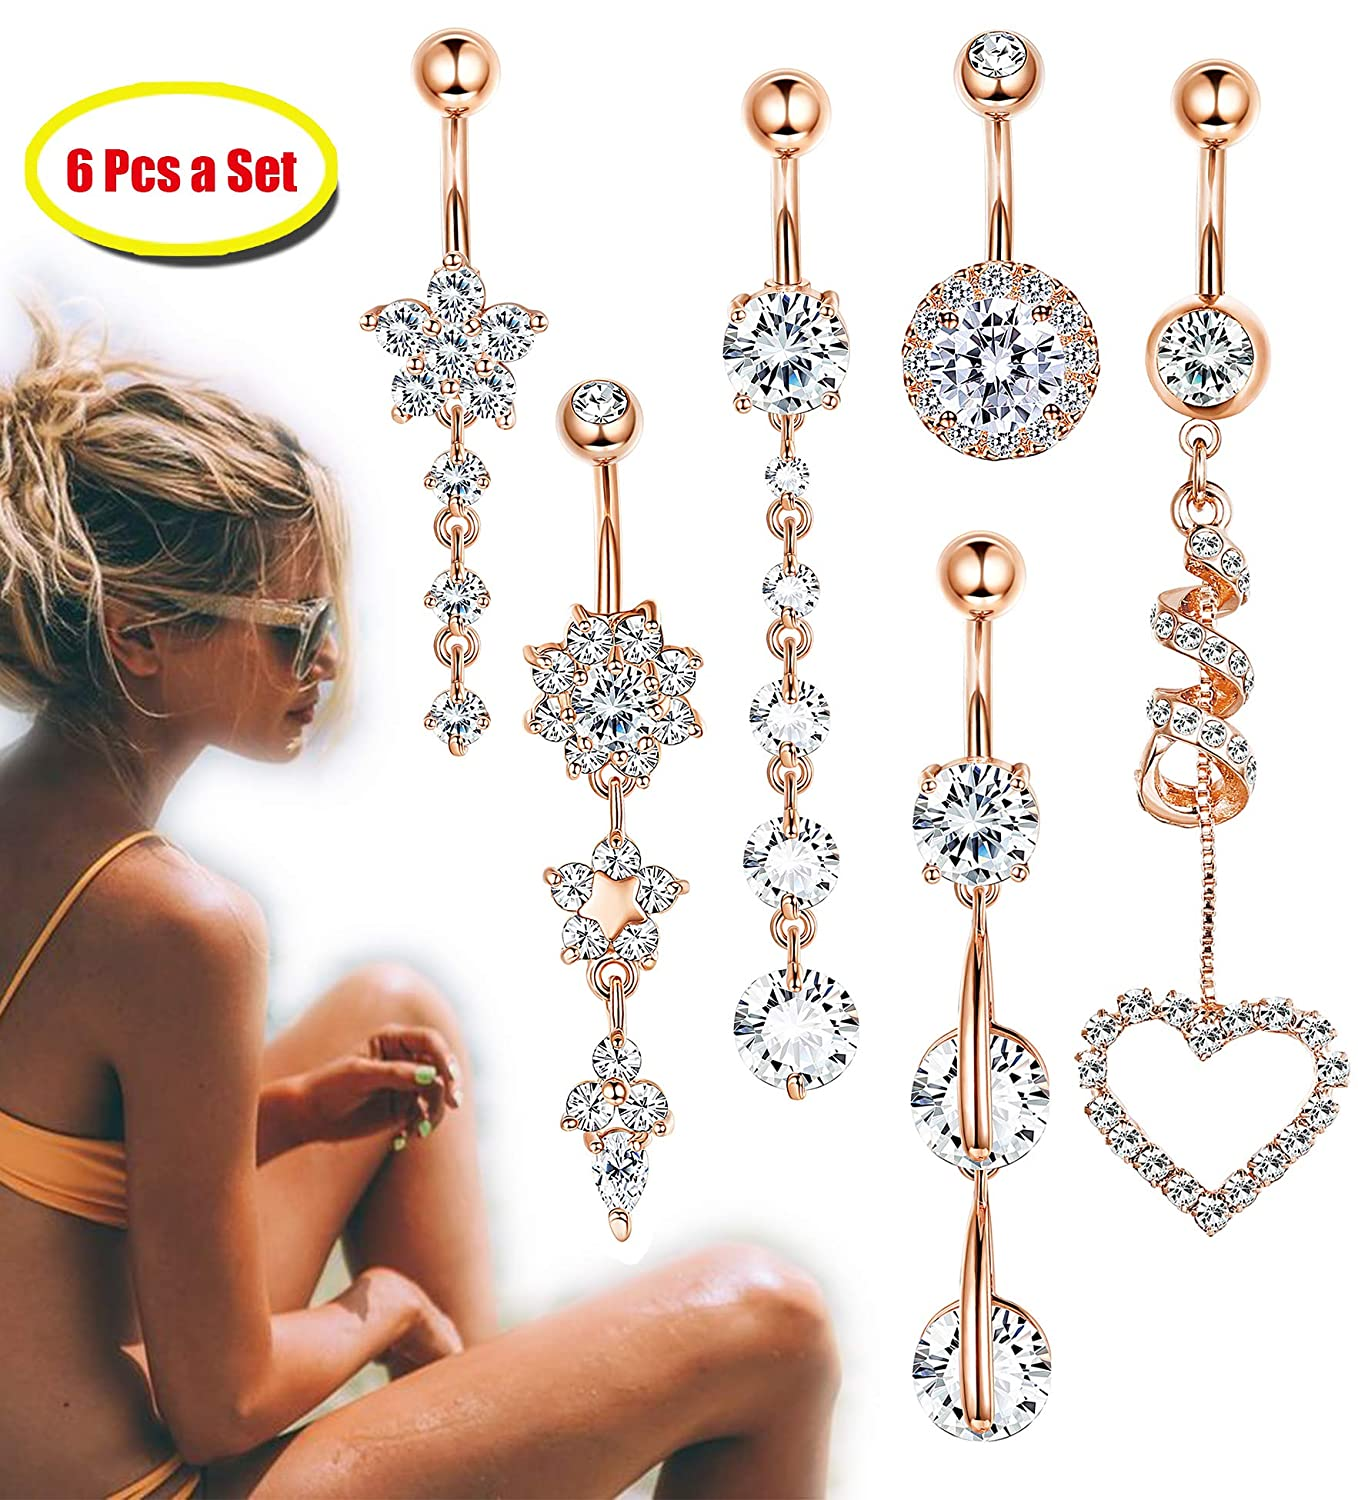 FIBO STEEL 6 Pcs 14G Stainless Steel Dangle Belly Button Rings Navel Barbell Body Jewelry Piercing